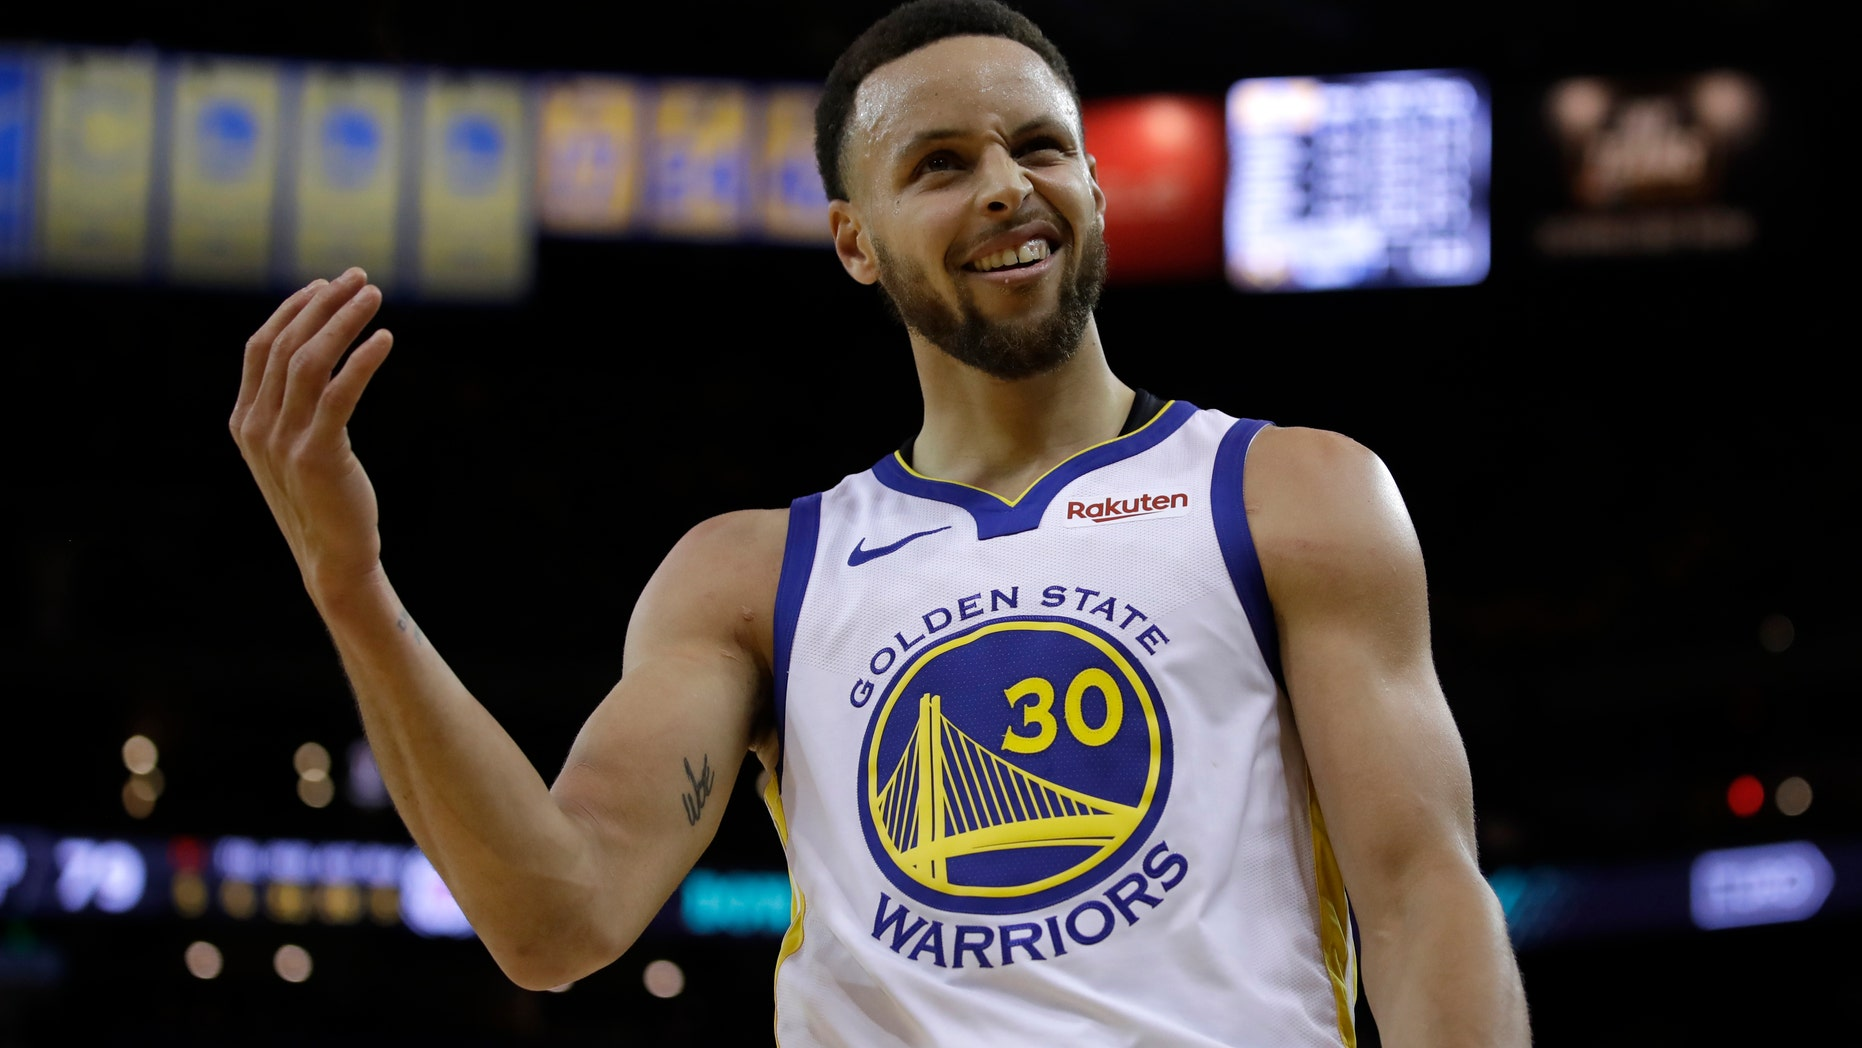 Golden State Warriors' Stephen Curry gestures to fans during the second half in Game 1 of a first-round NBA basketball playoff series against the Los Angeles Clippers, Saturday, April 13, 2019, in Oakland, Calif. (AP Photo/Ben Margot)